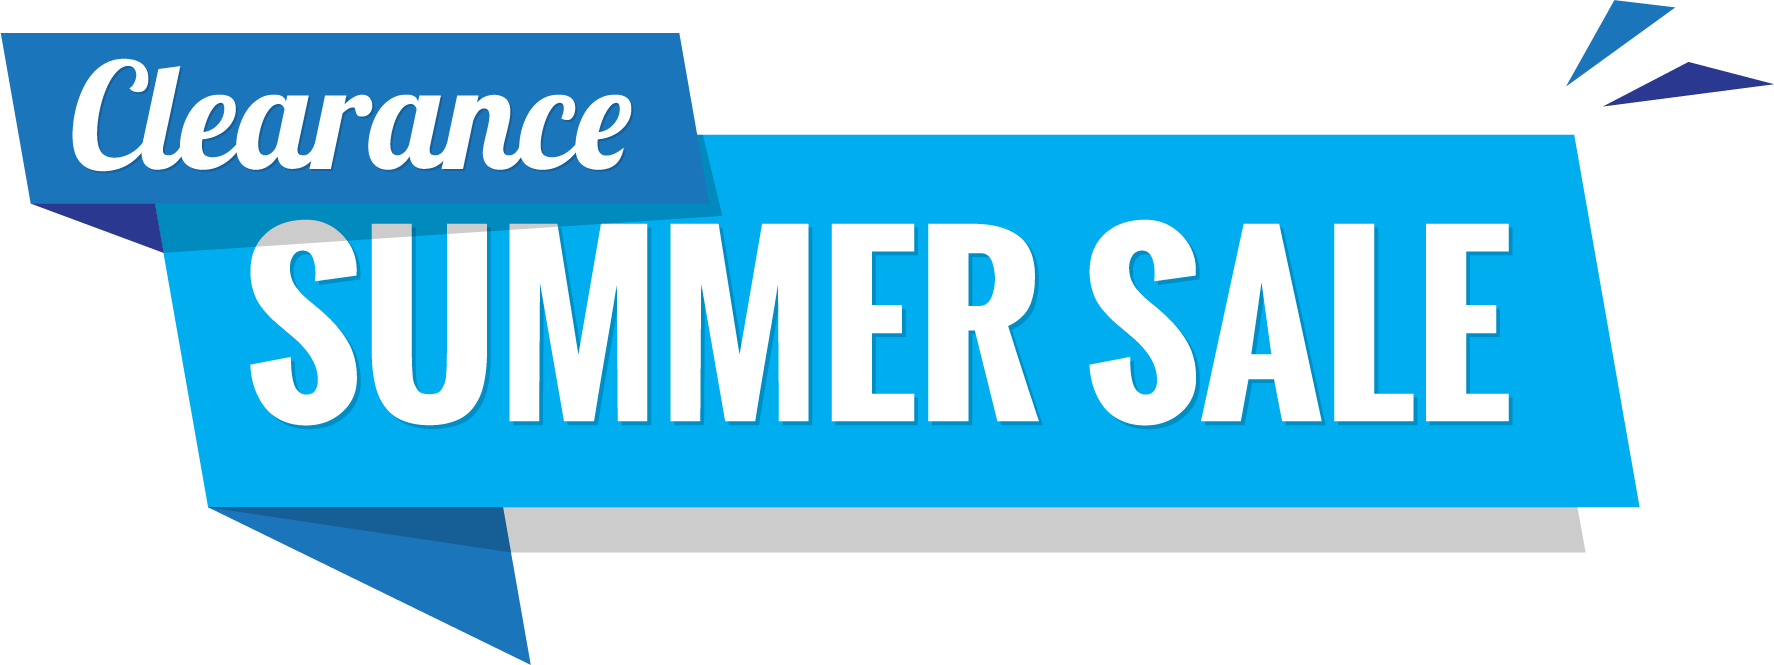 Clearance Summer Sale